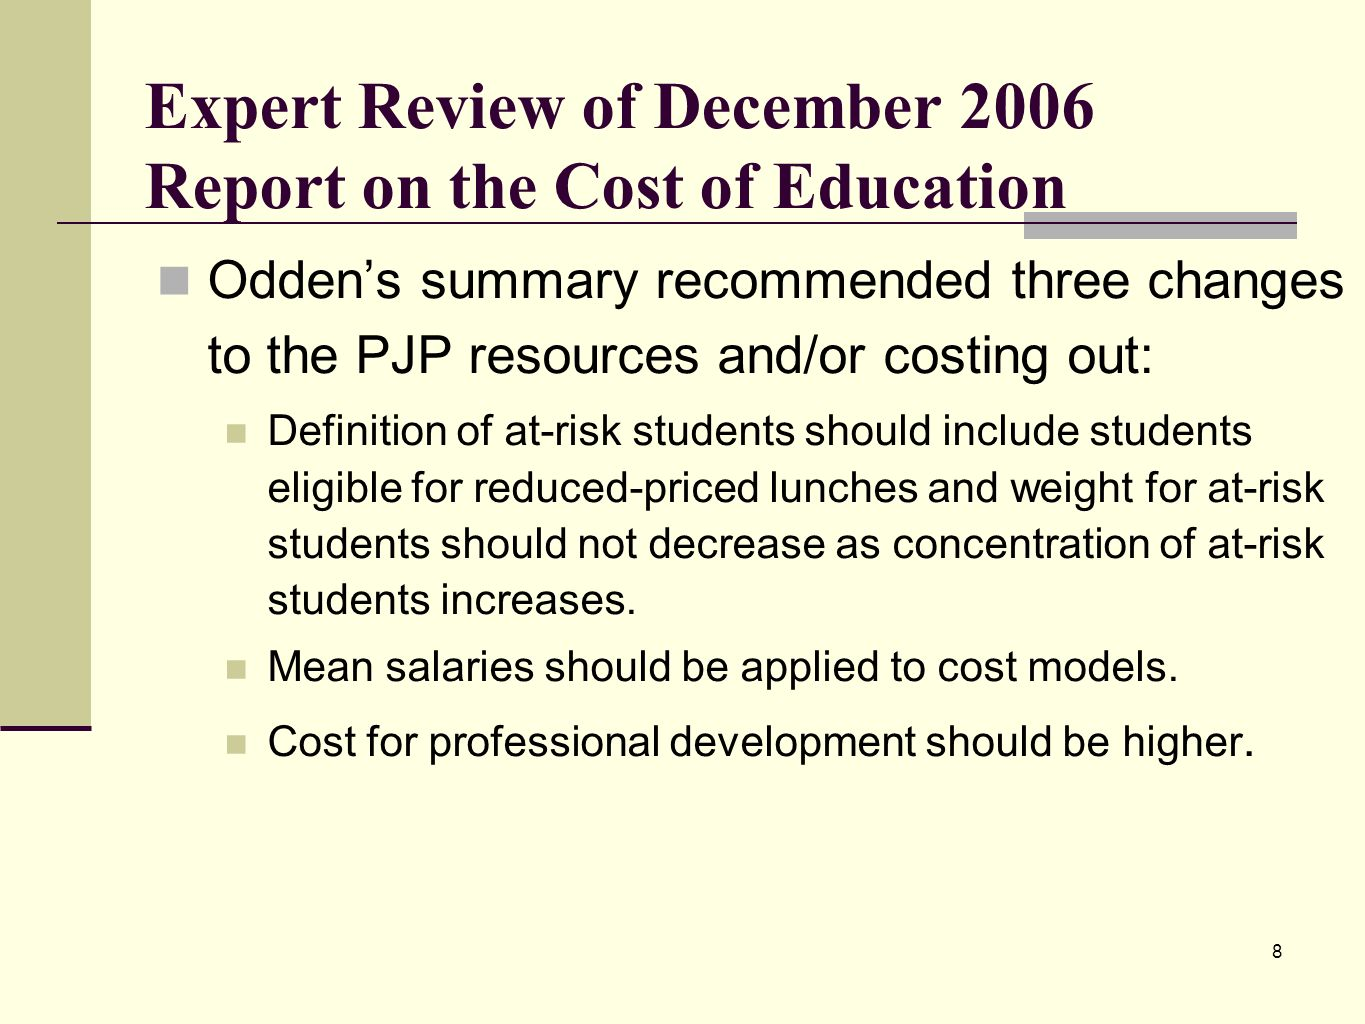 8 Expert Review of December 2006 Report on the Cost of Education Oddens summary recommended three changes to the PJP resources and/or costing out: Definition of at-risk students should include students eligible for reduced-priced lunches and weight for at-risk students should not decrease as concentration of at-risk students increases.